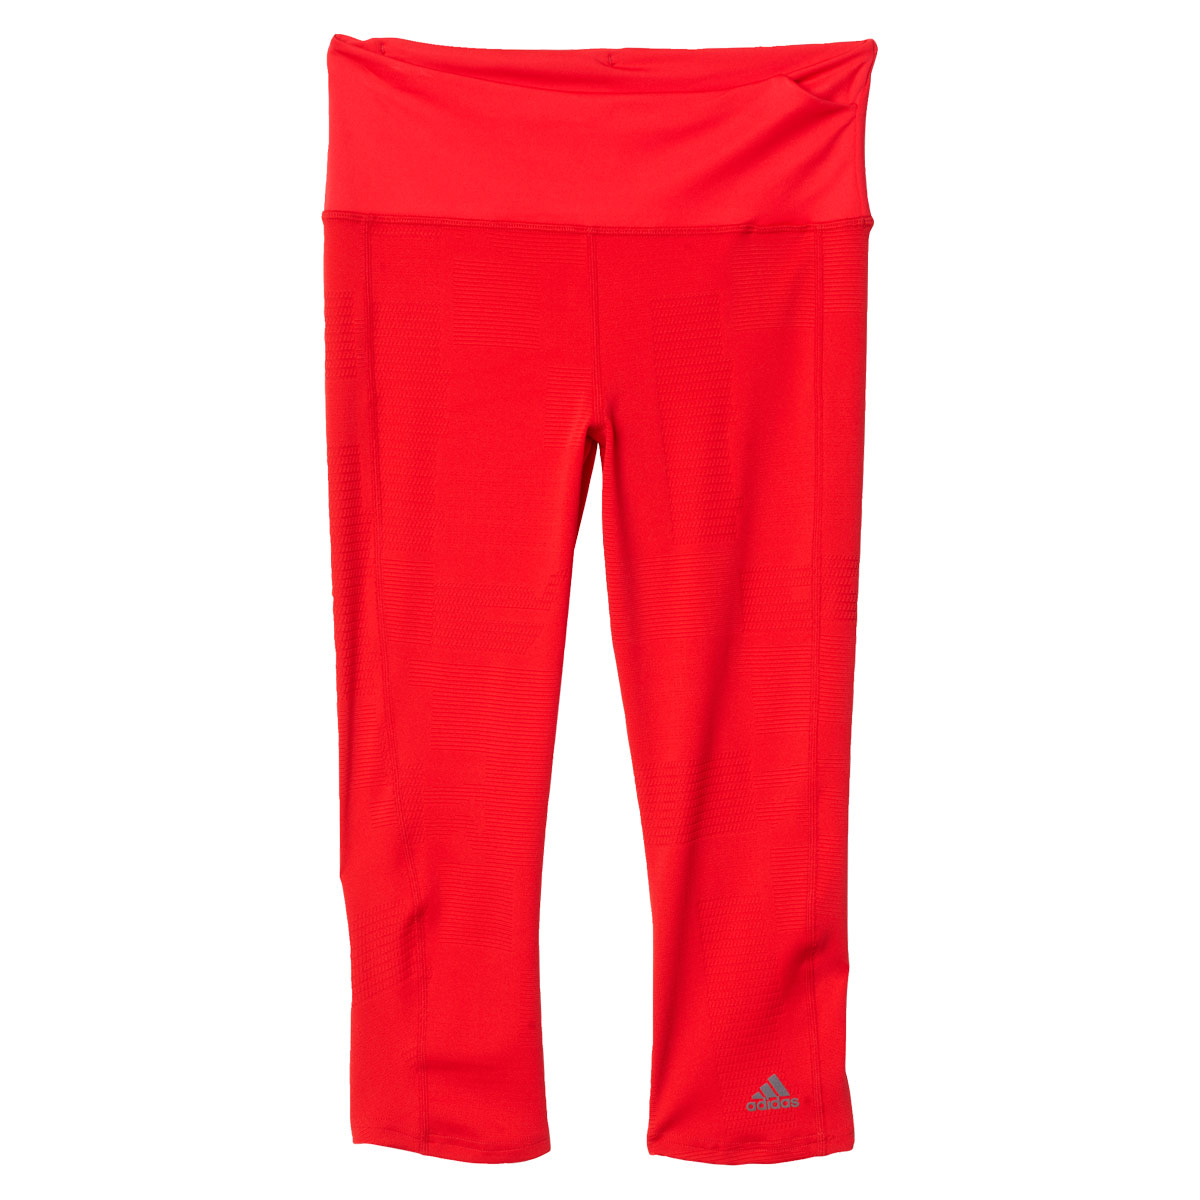 adidas ULTRA 3 4 Tight - Pantalons course pour Femme - Rouge  69f91d1edcb